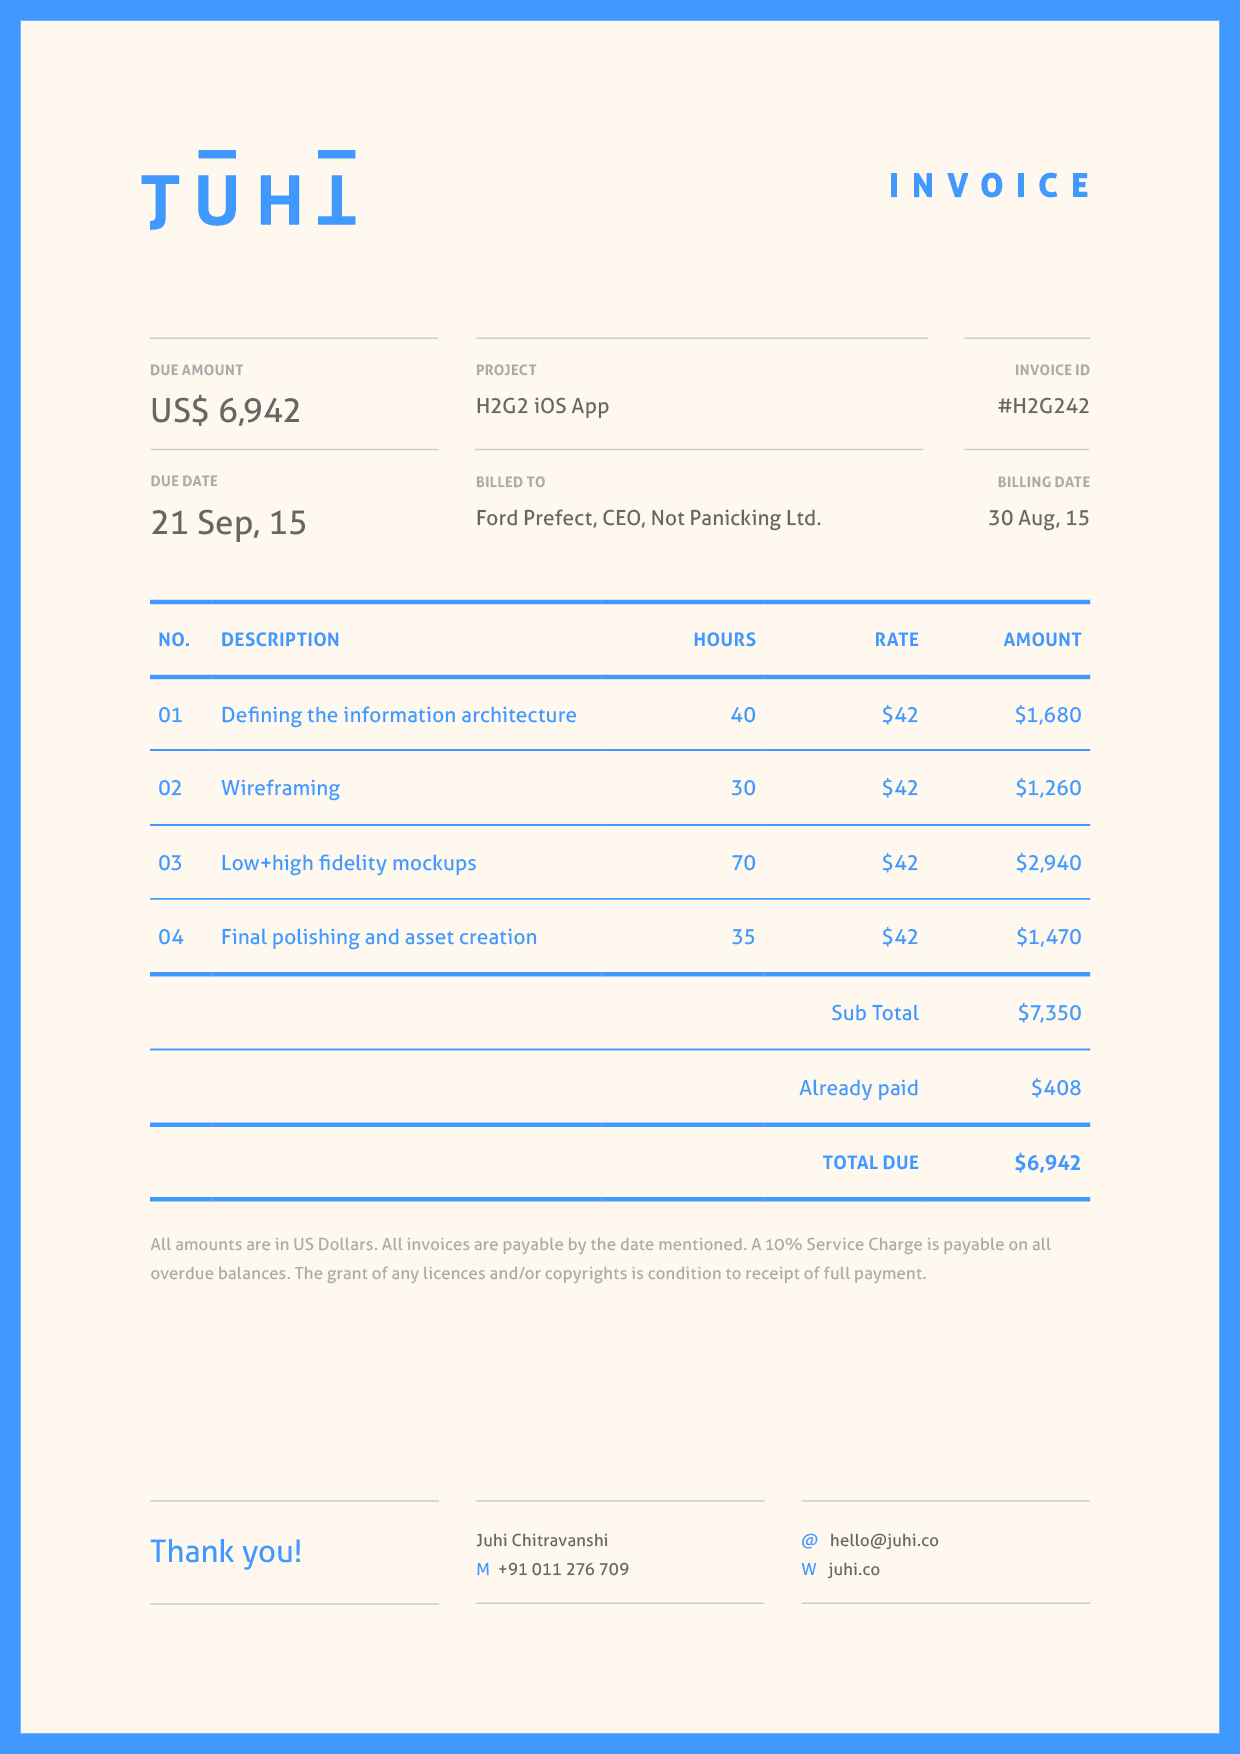 Pigbrotherus  Pretty Dont Hold Back On Your Invoice  Inspiring Designs  With Engaging Invoice By Juhi Chitravanshi Follow With Adorable Invoice Design Also Billing Invoice In Addition Invoice Printing And Fedex Invoice As Well As Example Invoice Additionally Service Invoice From Inspirationfeedcom With Pigbrotherus  Engaging Dont Hold Back On Your Invoice  Inspiring Designs  With Adorable Invoice By Juhi Chitravanshi Follow And Pretty Invoice Design Also Billing Invoice In Addition Invoice Printing From Inspirationfeedcom